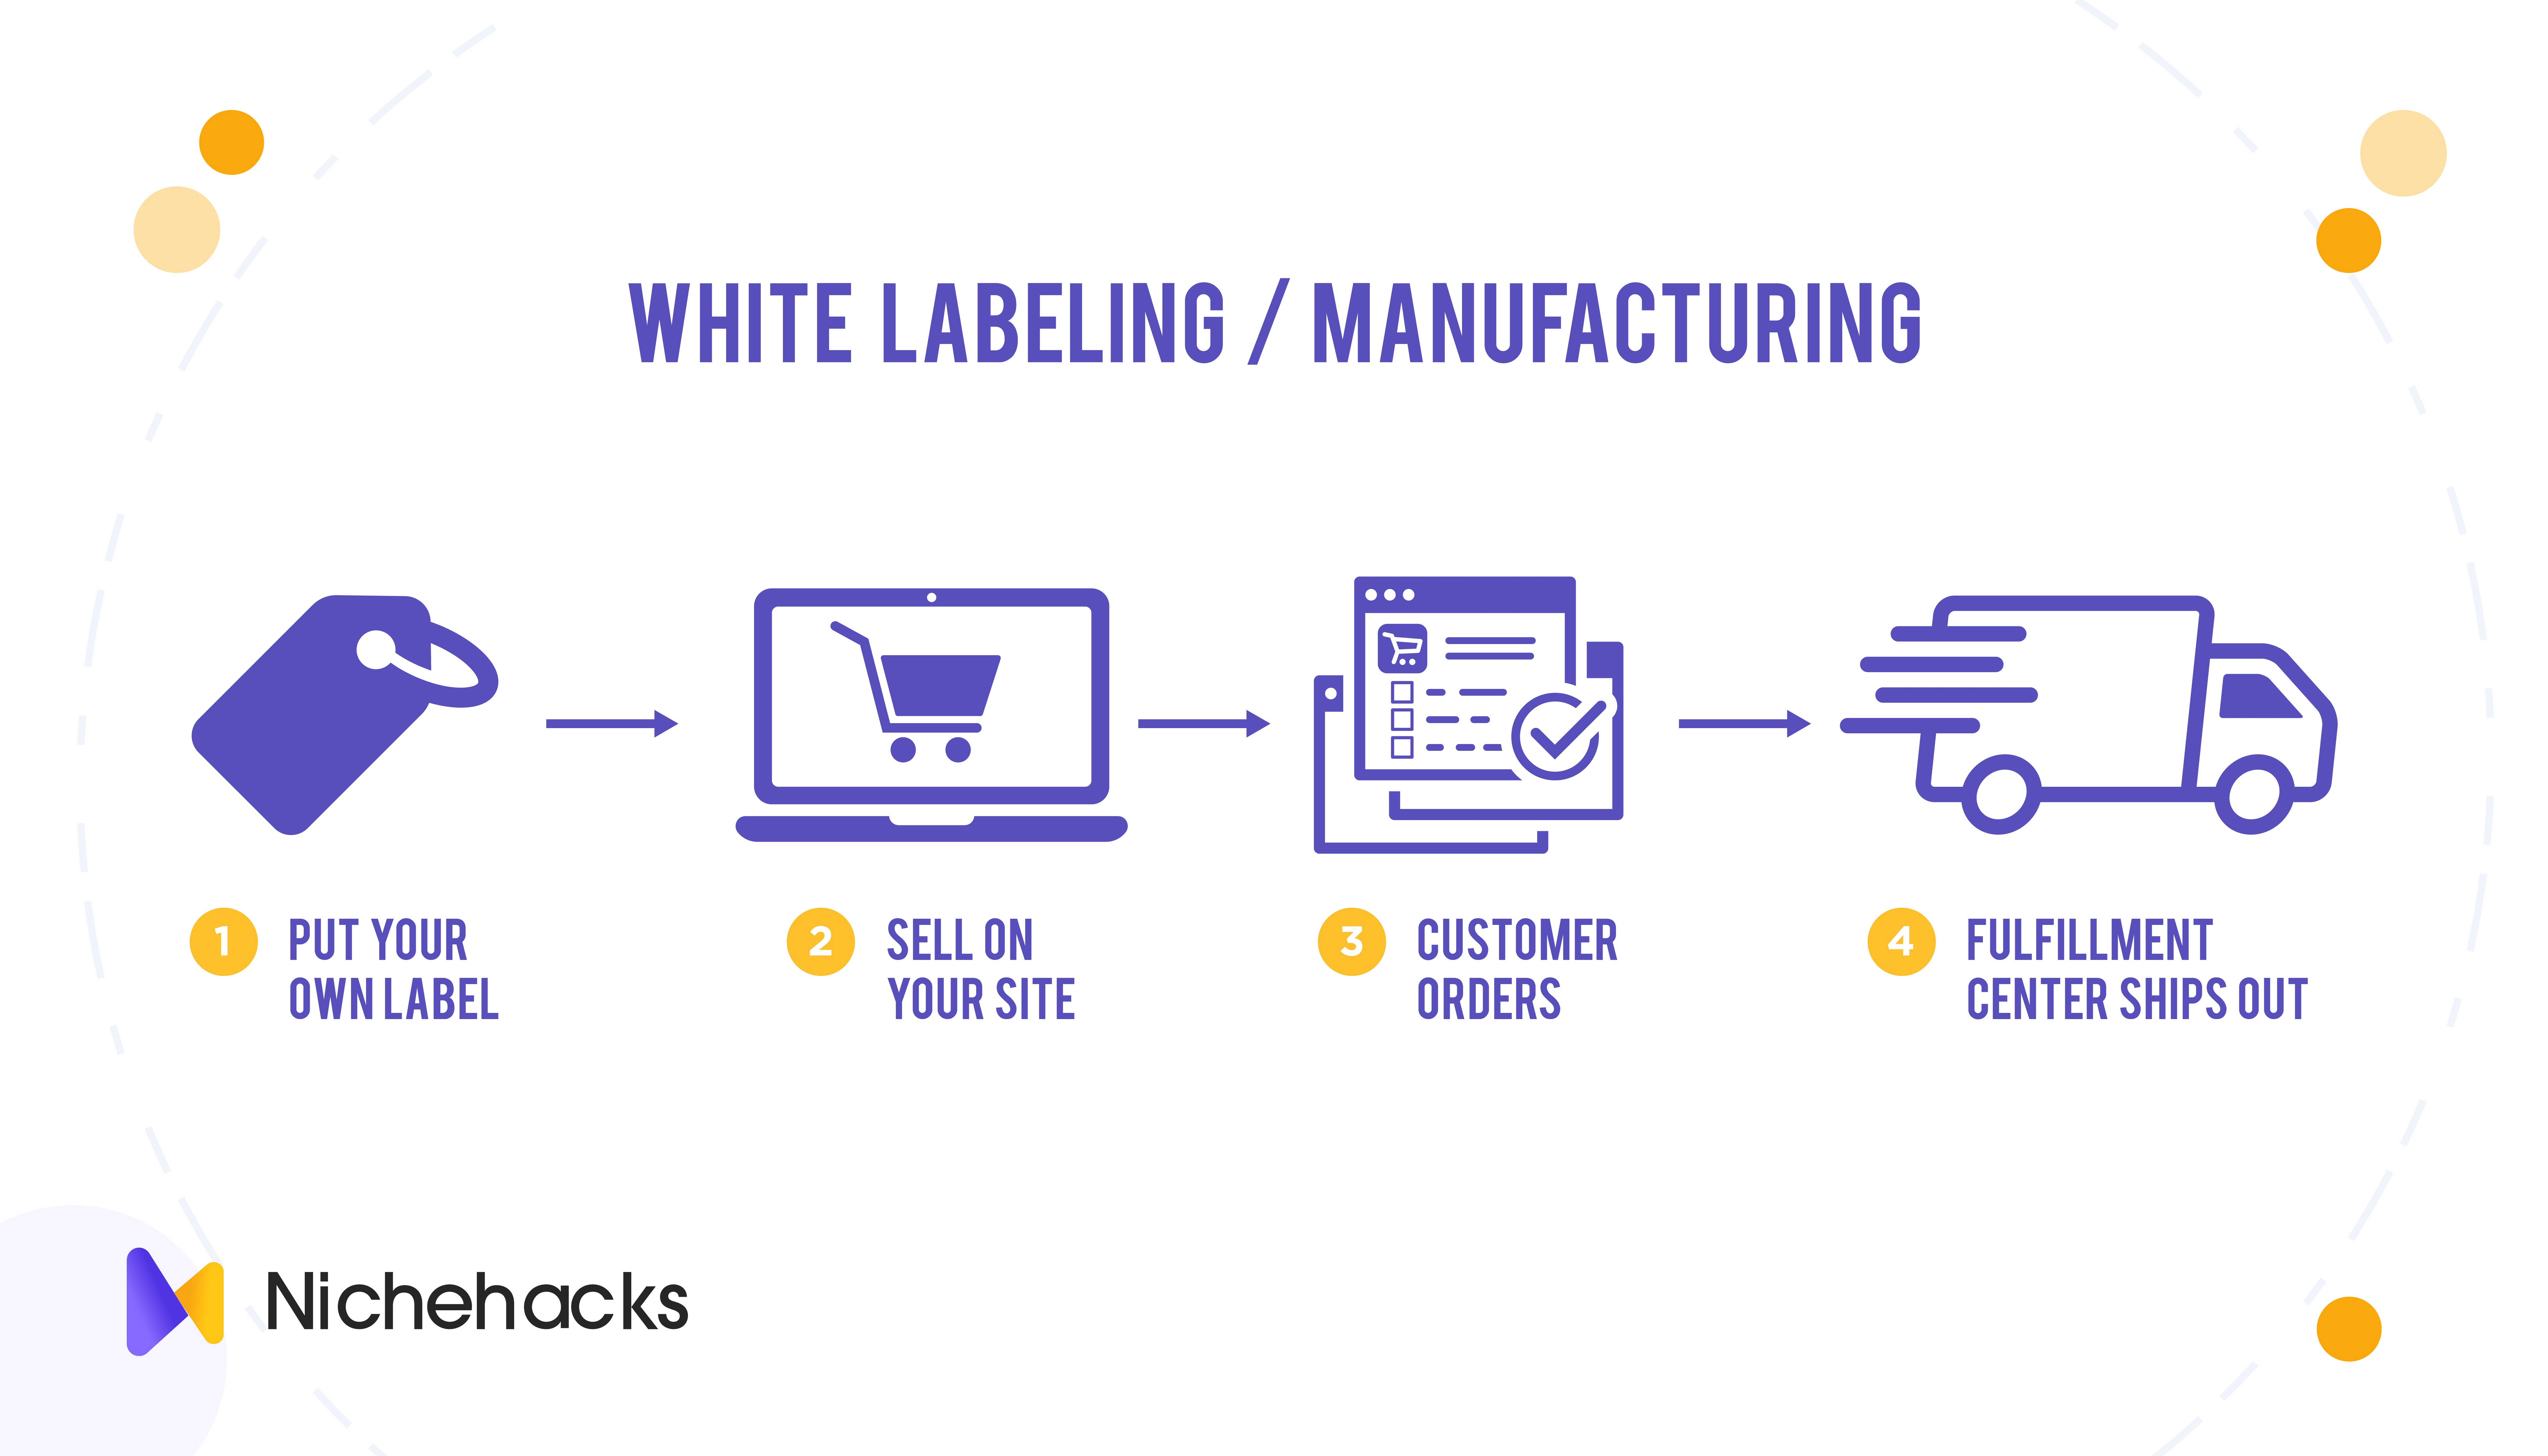 White labeling/manufacturing illustration